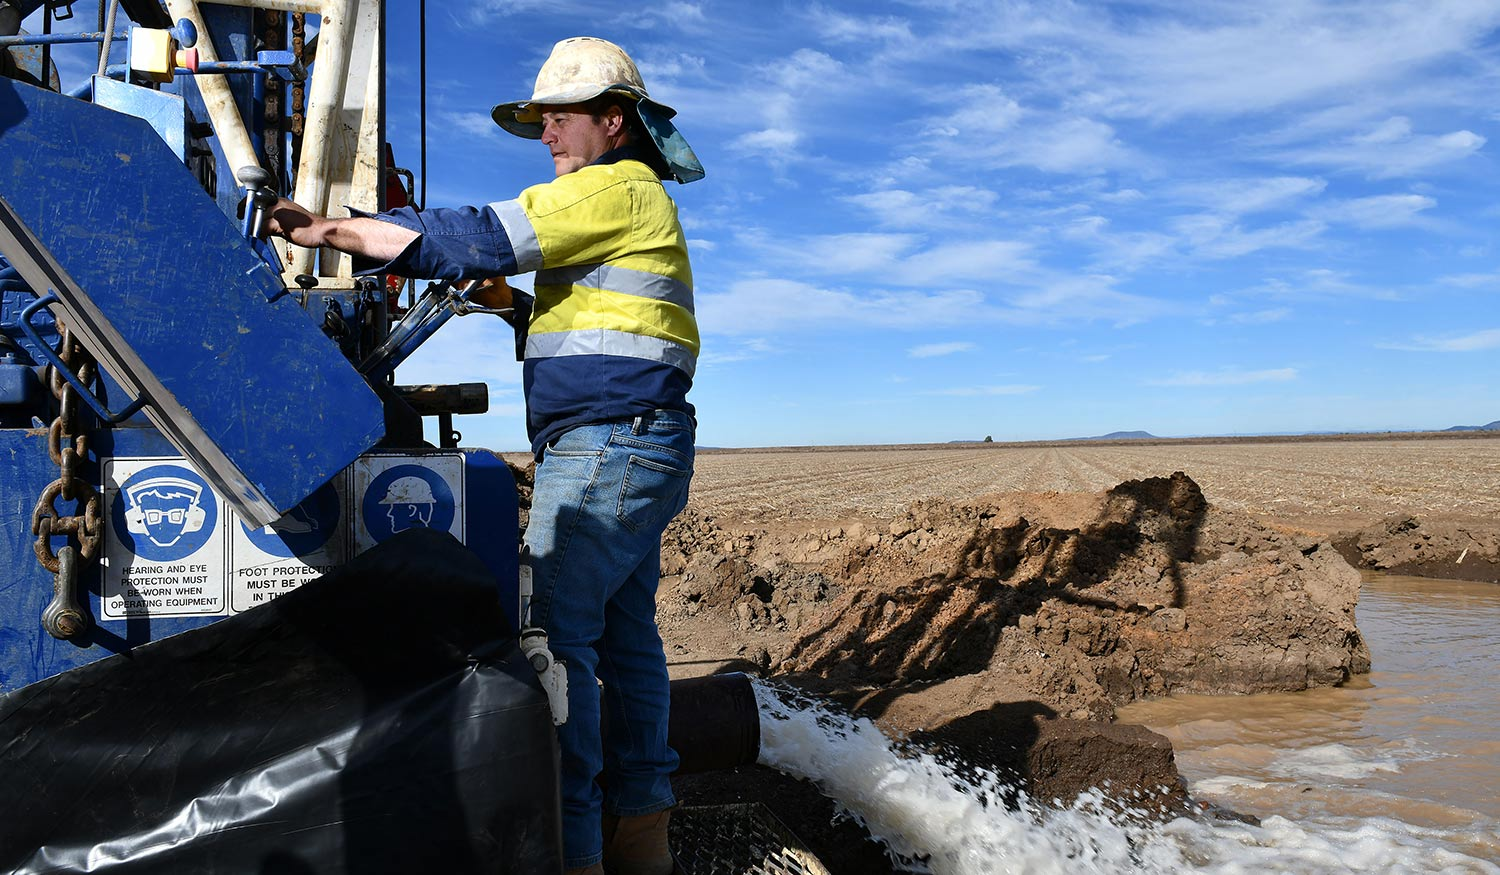 A man operating a water drilling